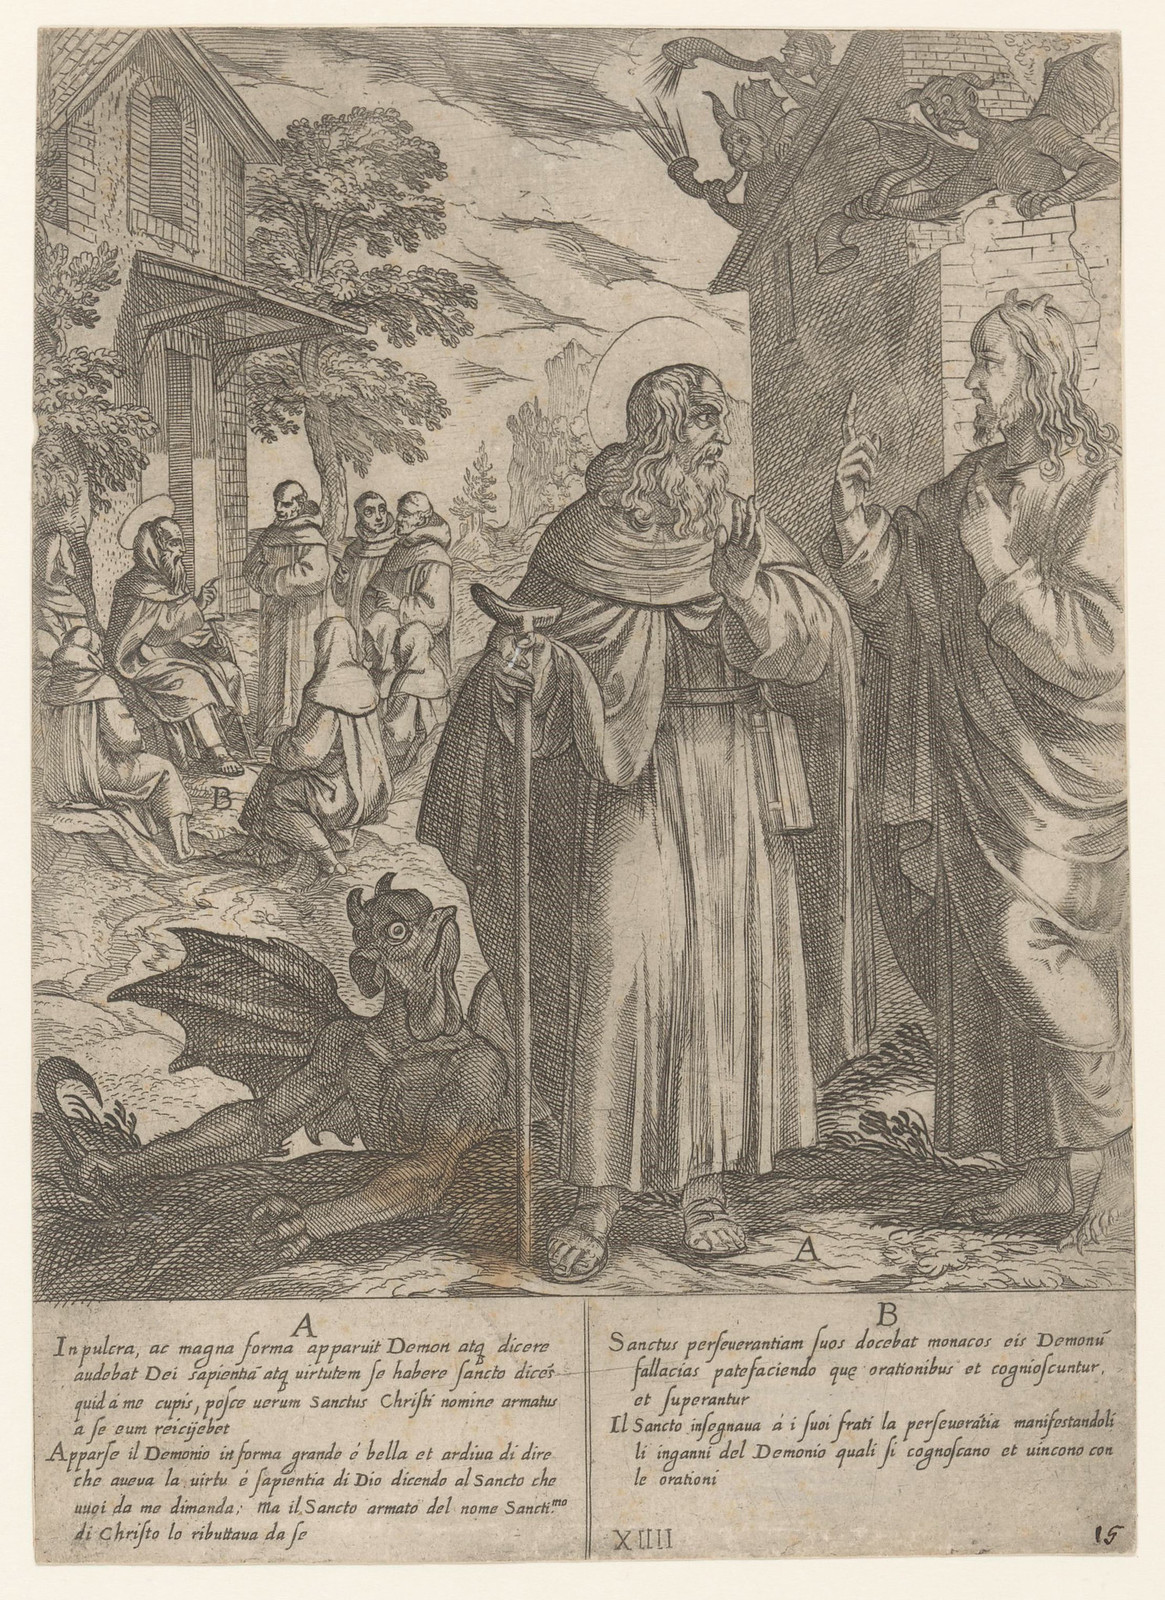 Antonio Tempesta, after Niccolo Circignani and Giovanni Battista Lombardelli - Saint Anthony With Demons - 04, 1598